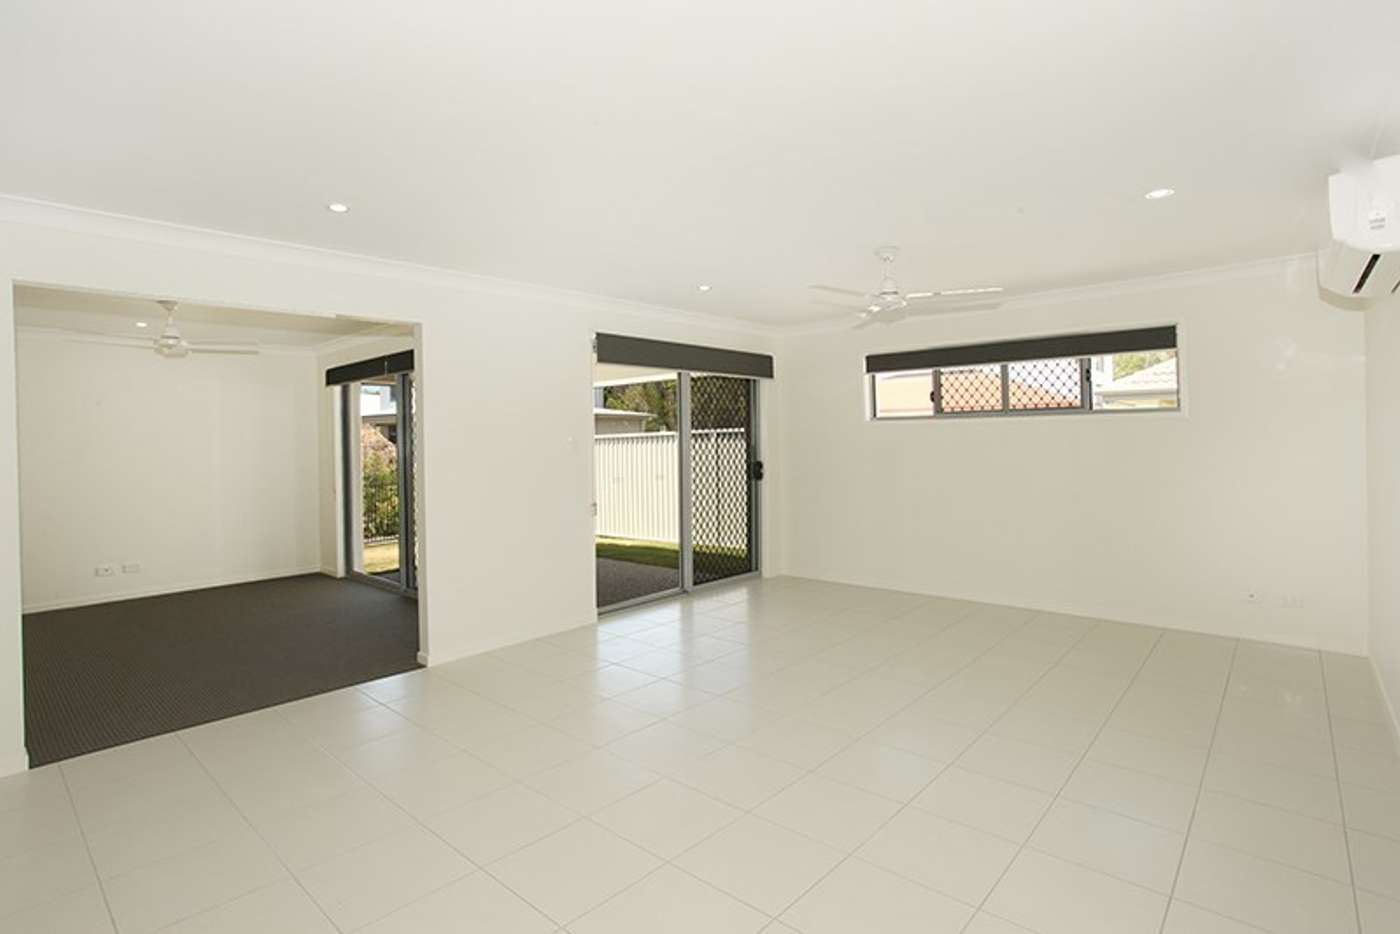 Seventh view of Homely house listing, 16 Burdekin Place, Pelican Waters QLD 4551